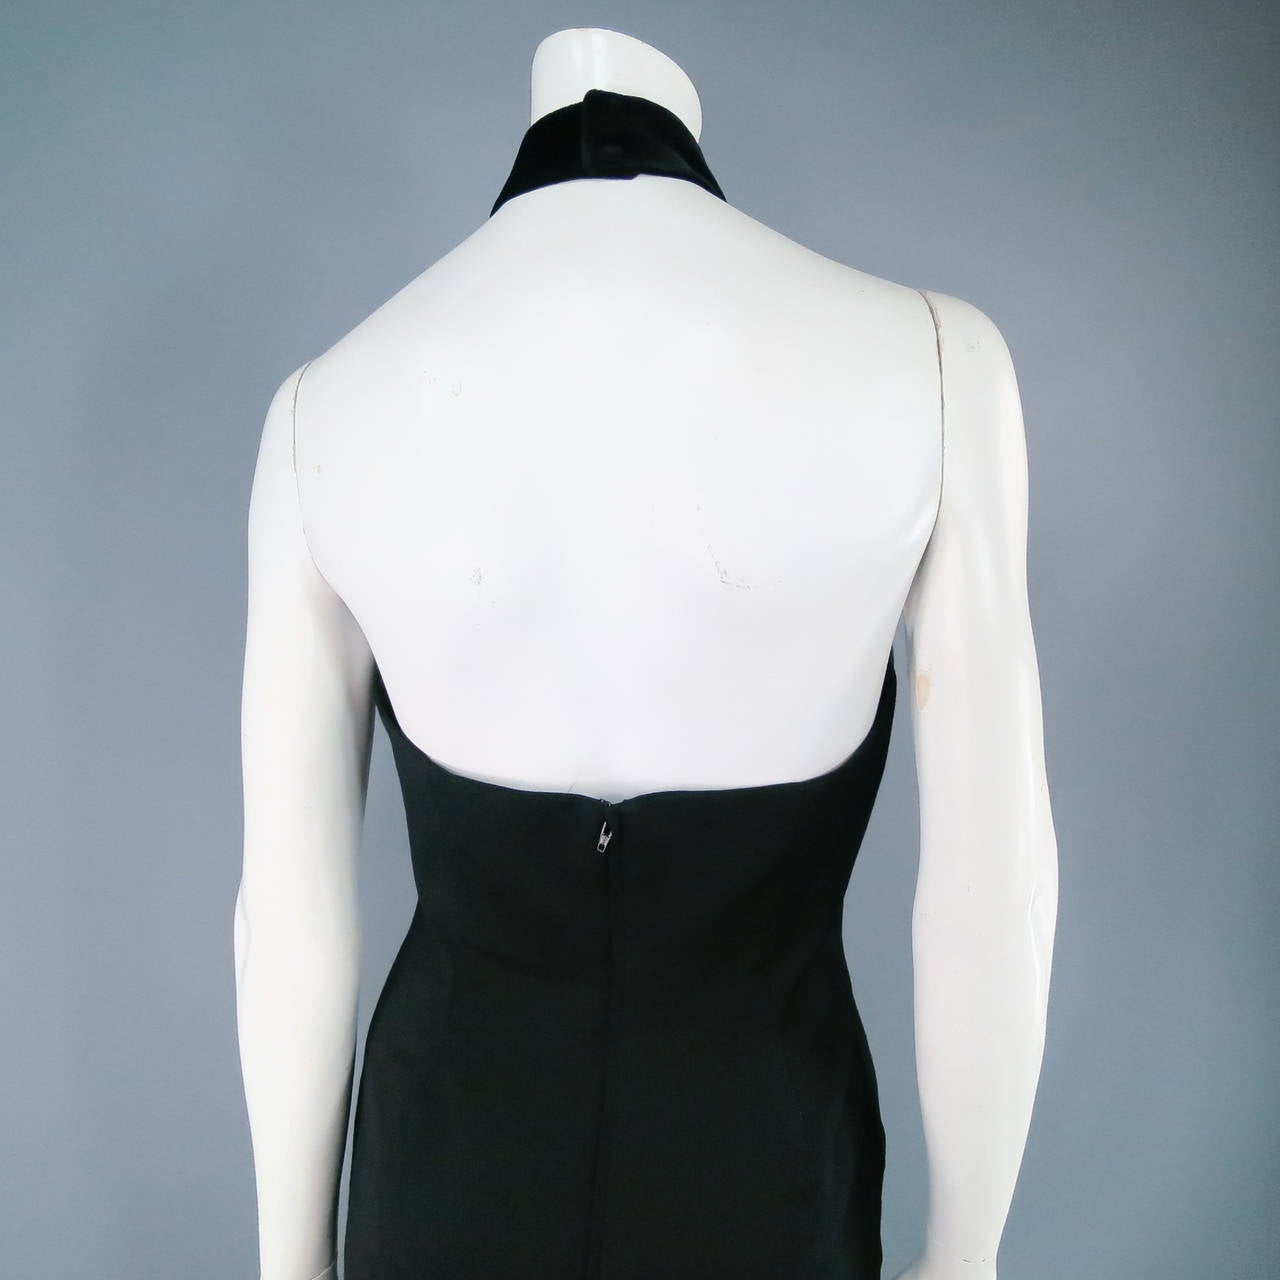 THIERRY MUGLER Size 6 Black Cotton/Wool Cocktail Dress 6